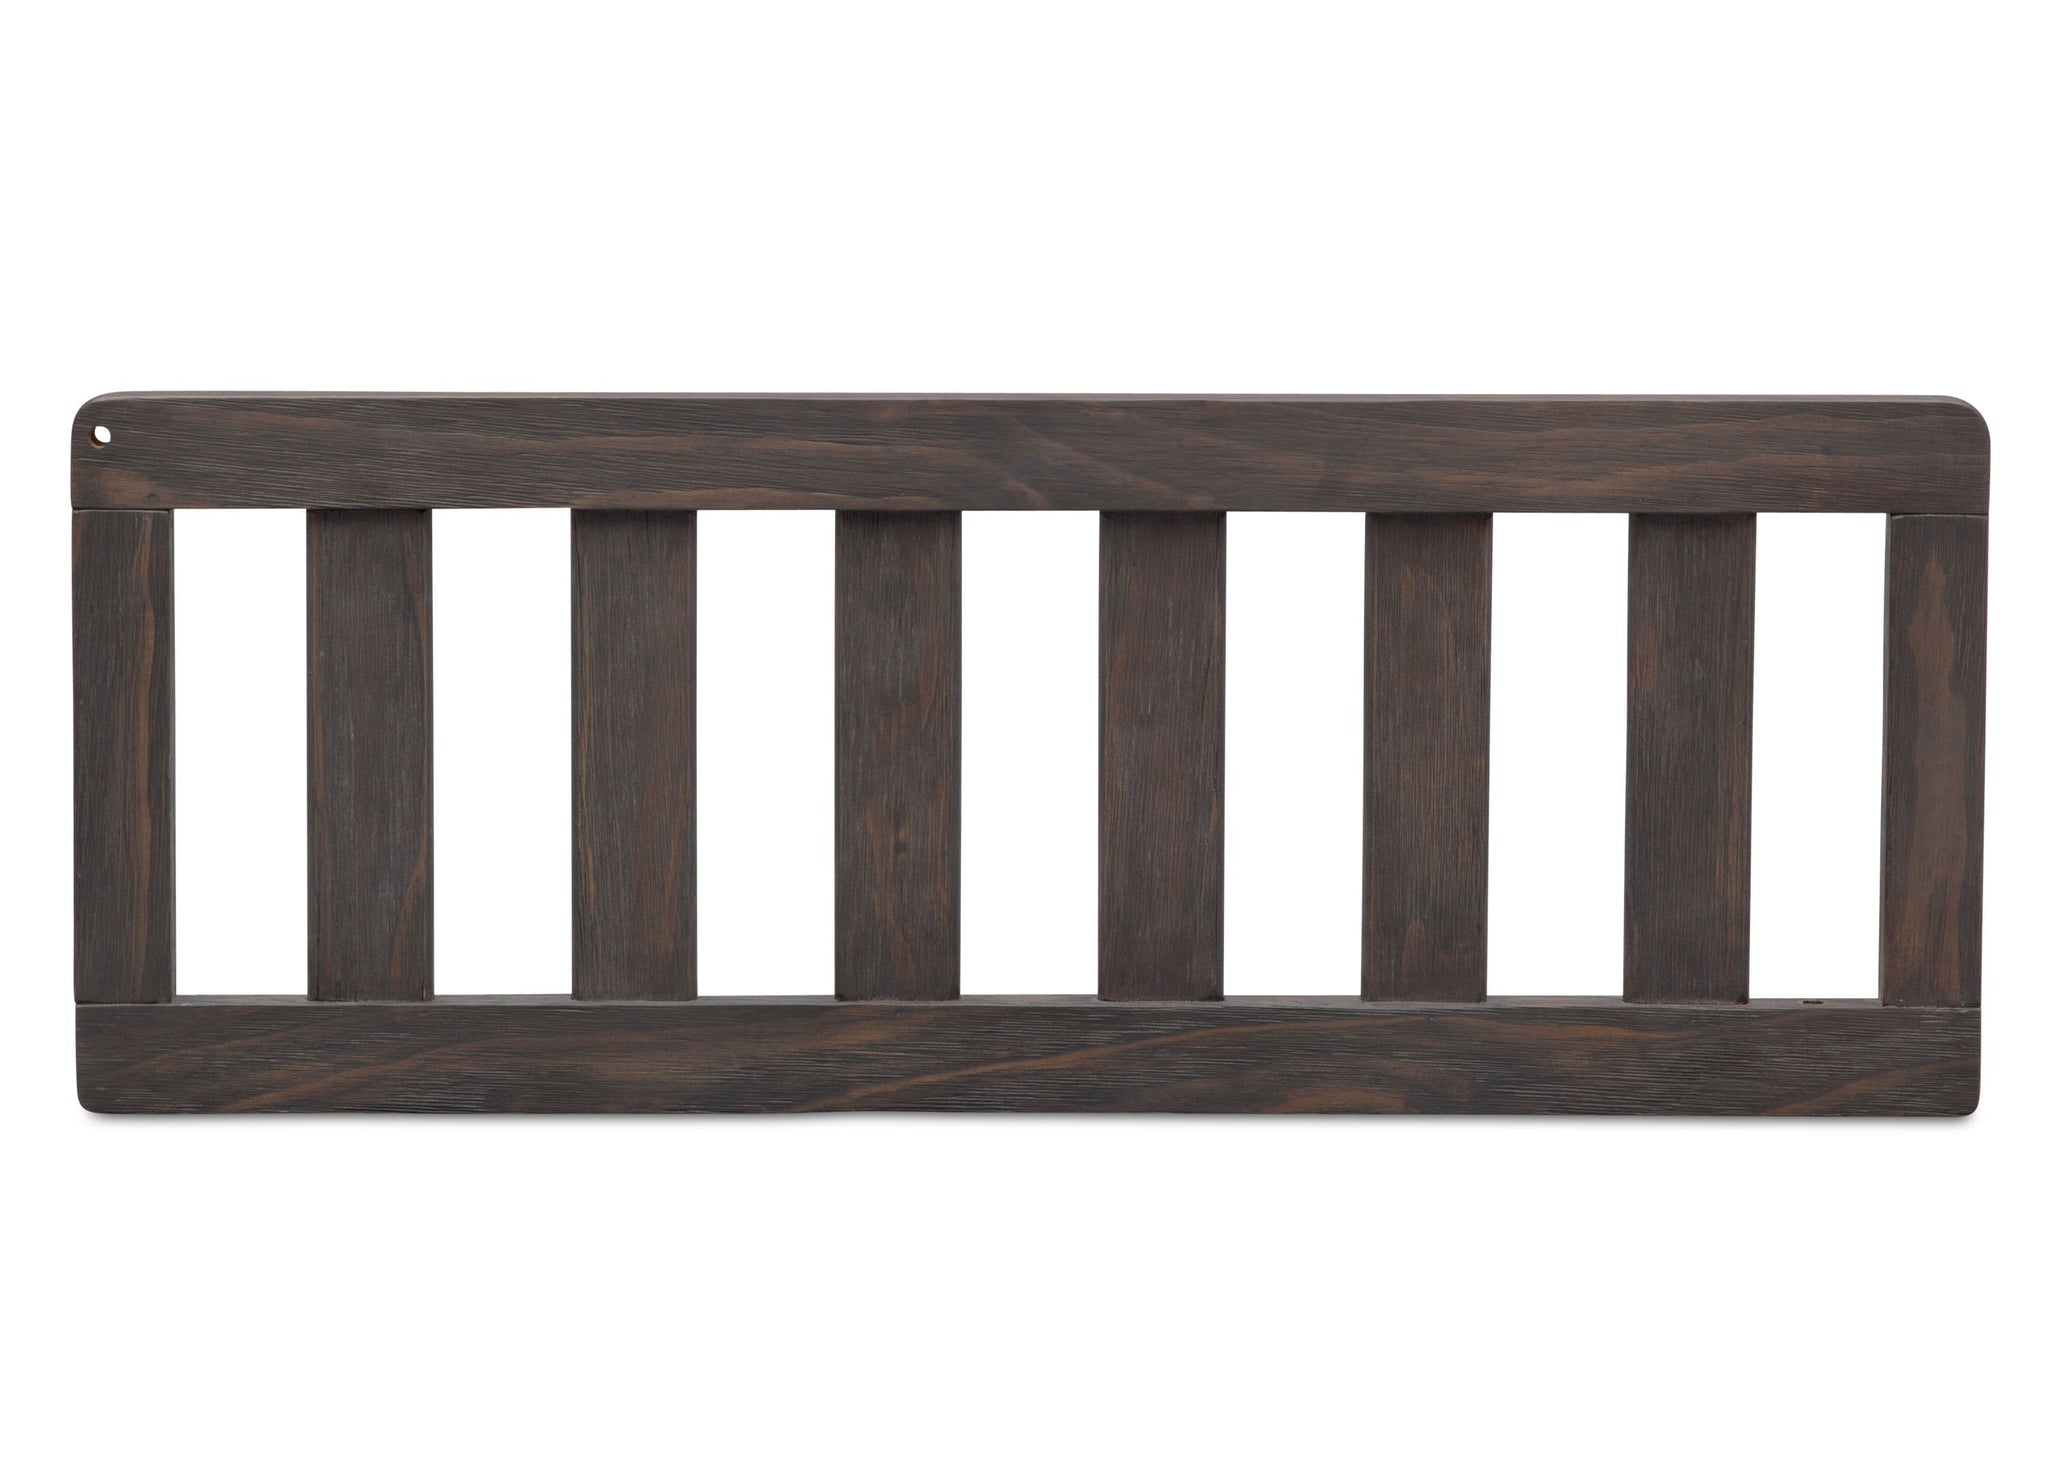 Serta Daybed/Toddler Guardrail Kit (703725) Rustic Grey (084ST) Front View a1a